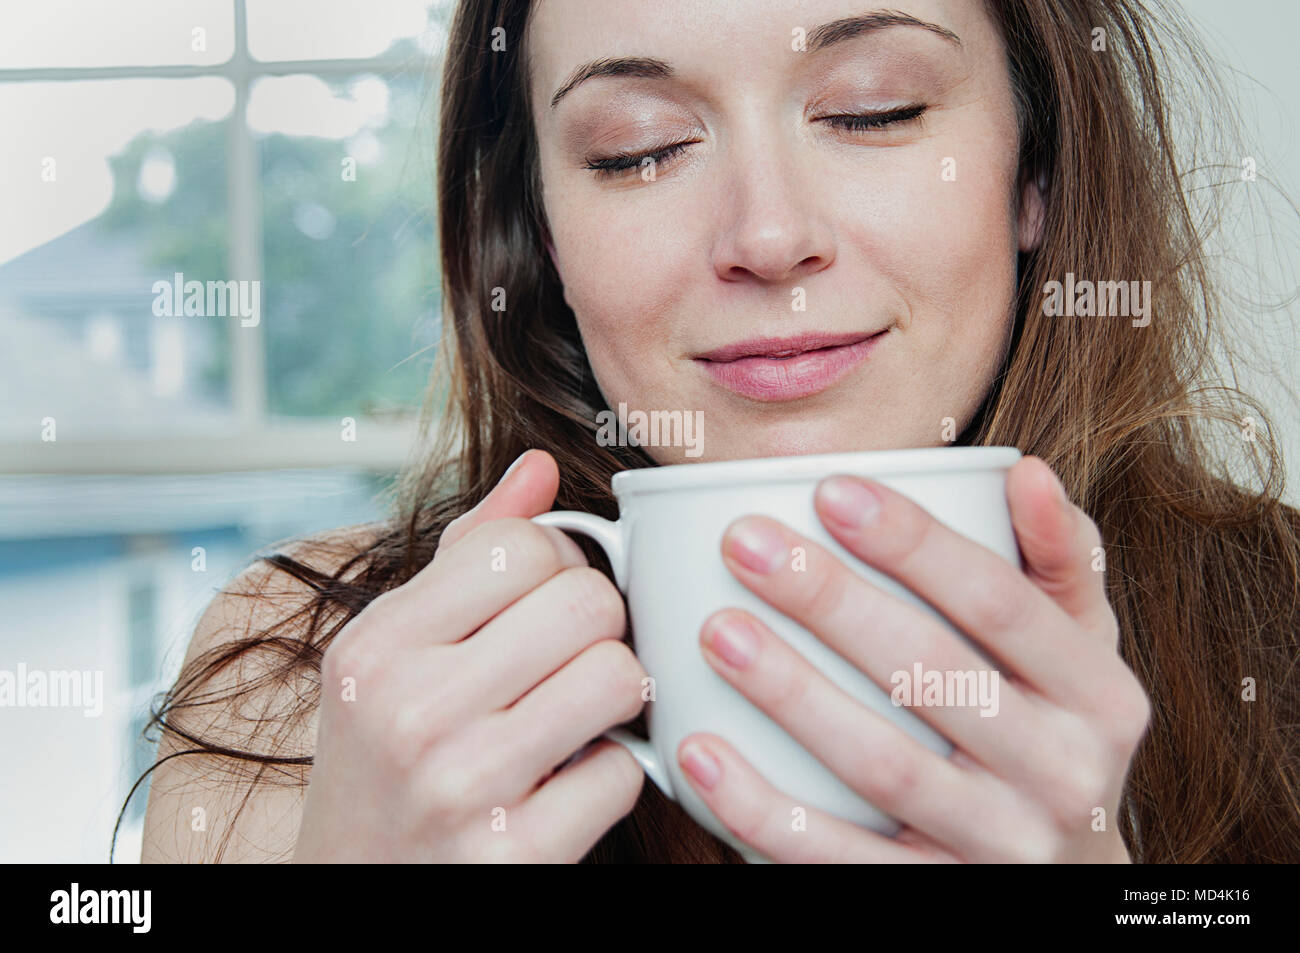 A young woman drinking her morning coffee. - Stock Image